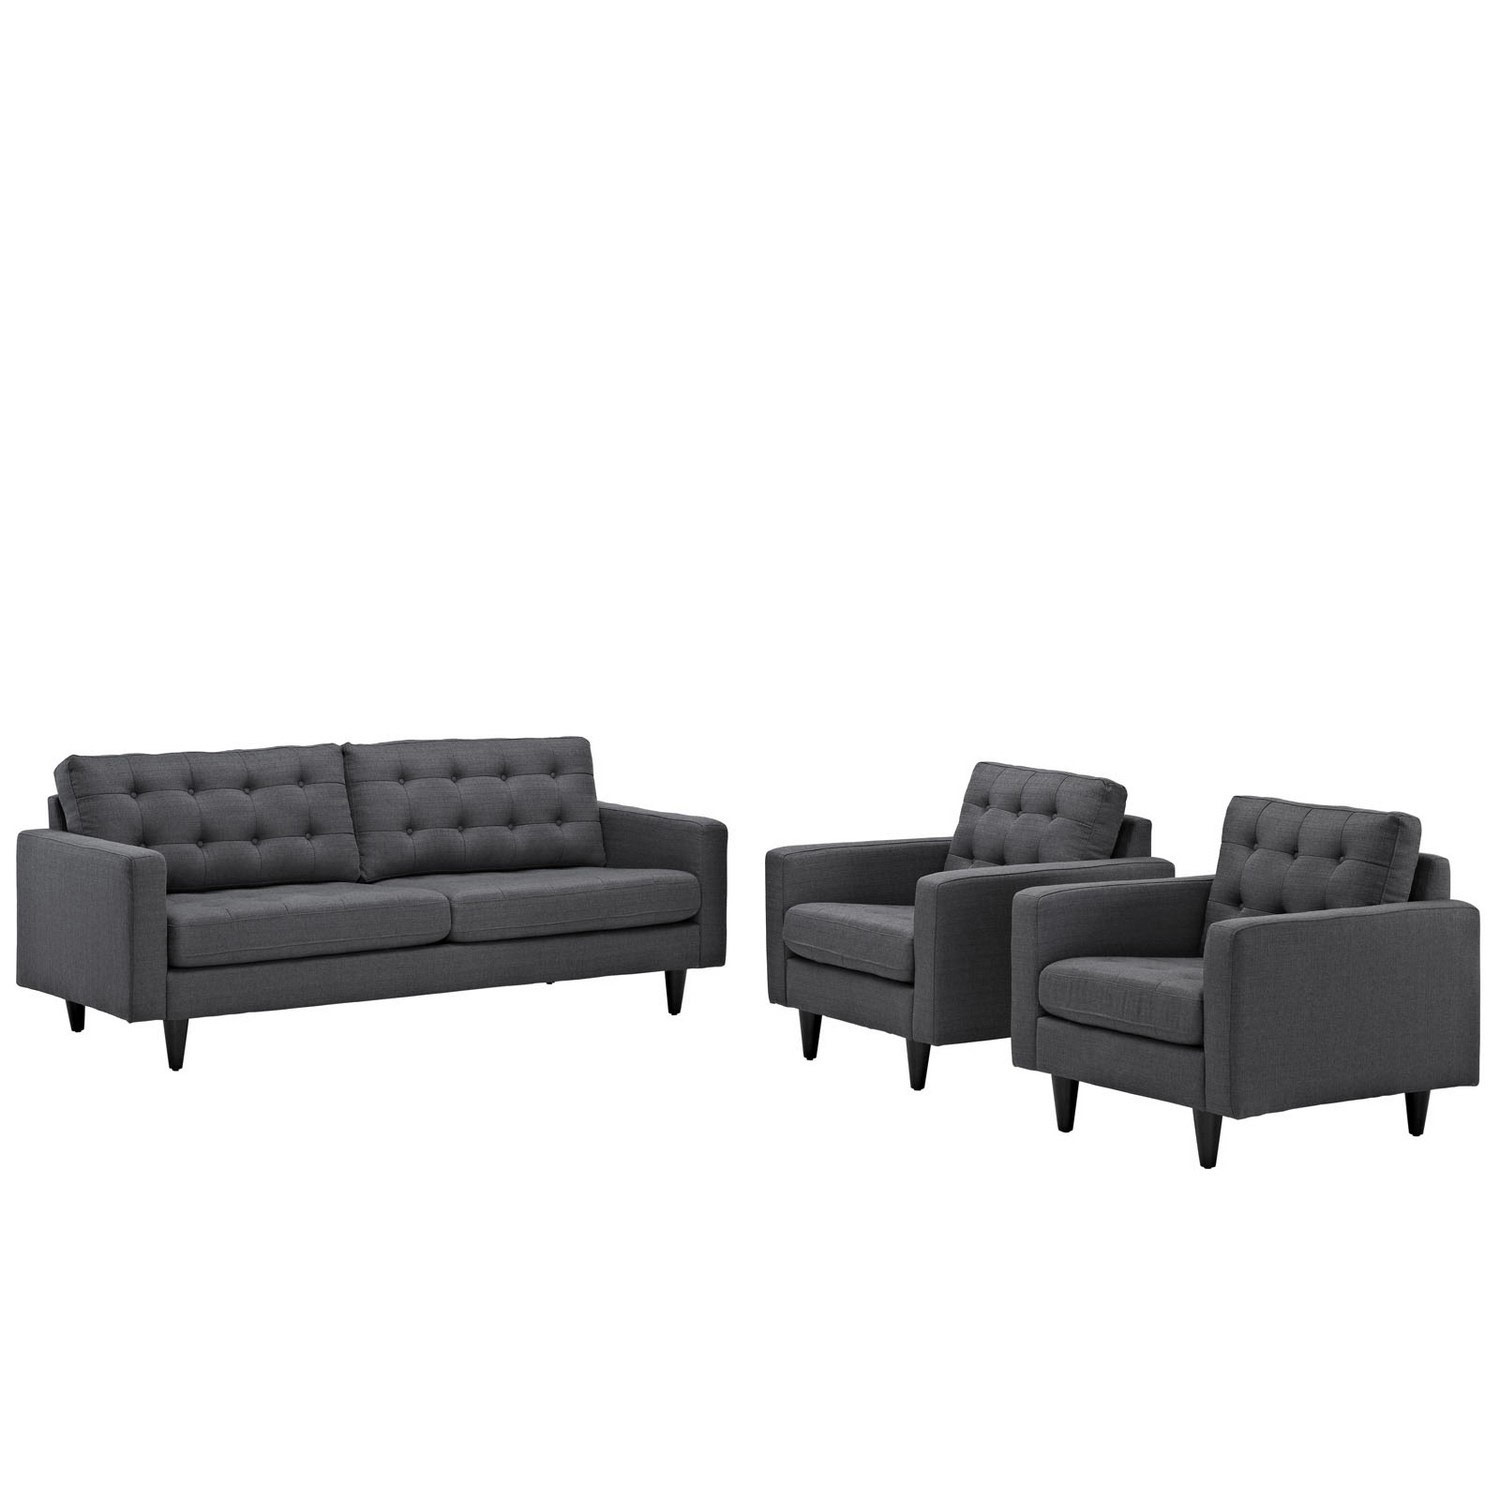 Modway Empress 3PC Sofa and Armchairs Set - Gray